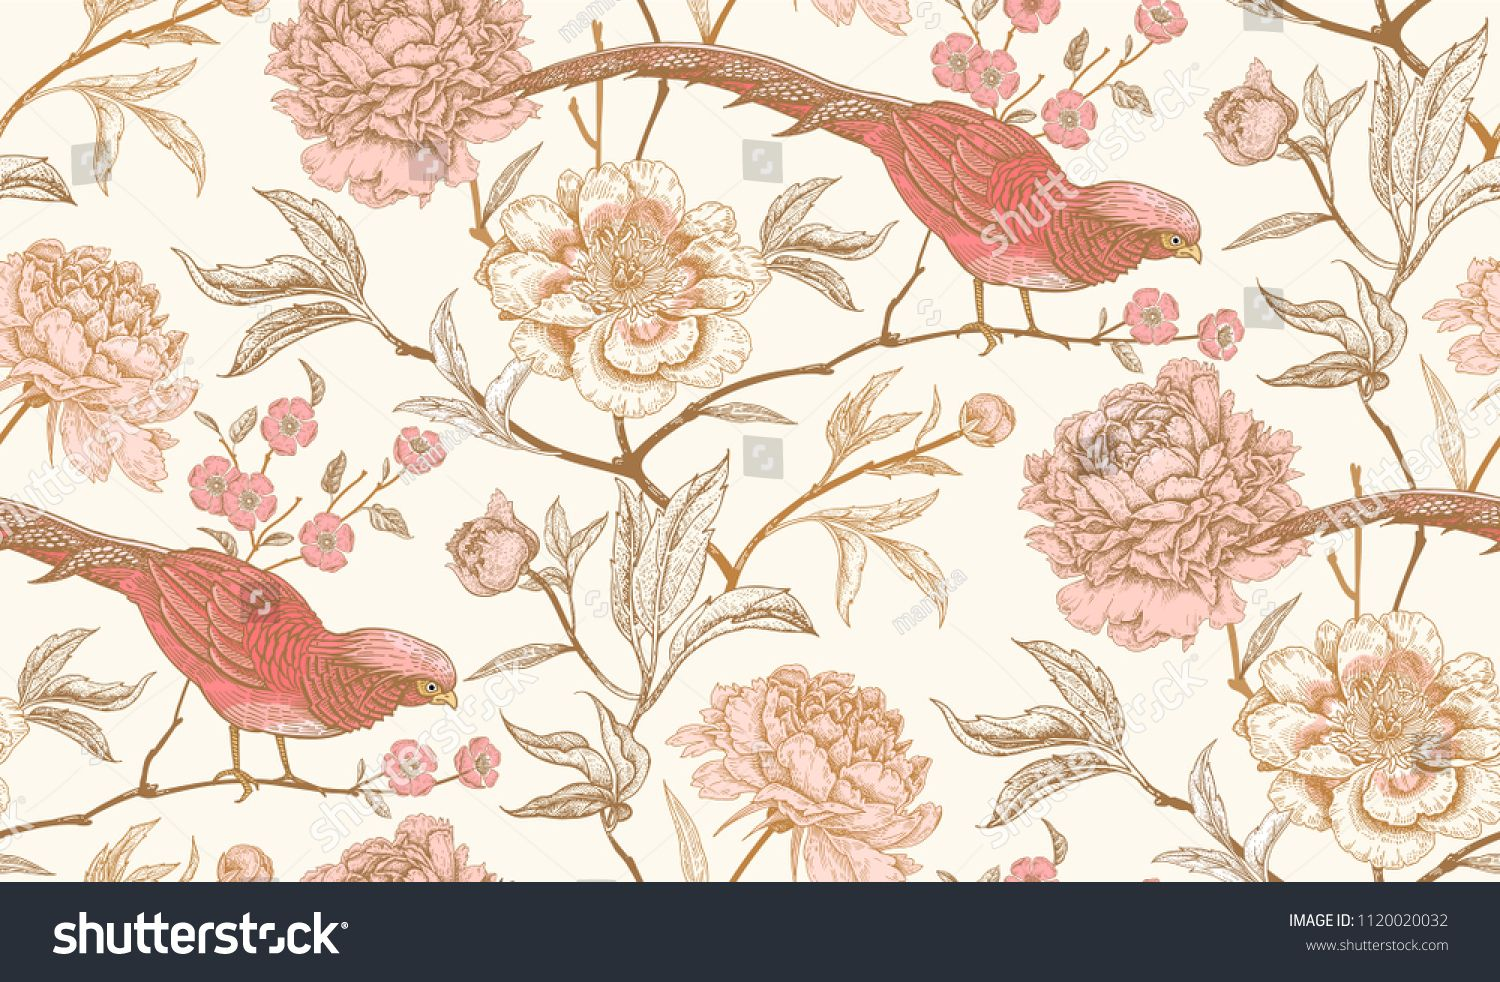 Peonies And Pheasants Floral Vintage Seamless Pattern With